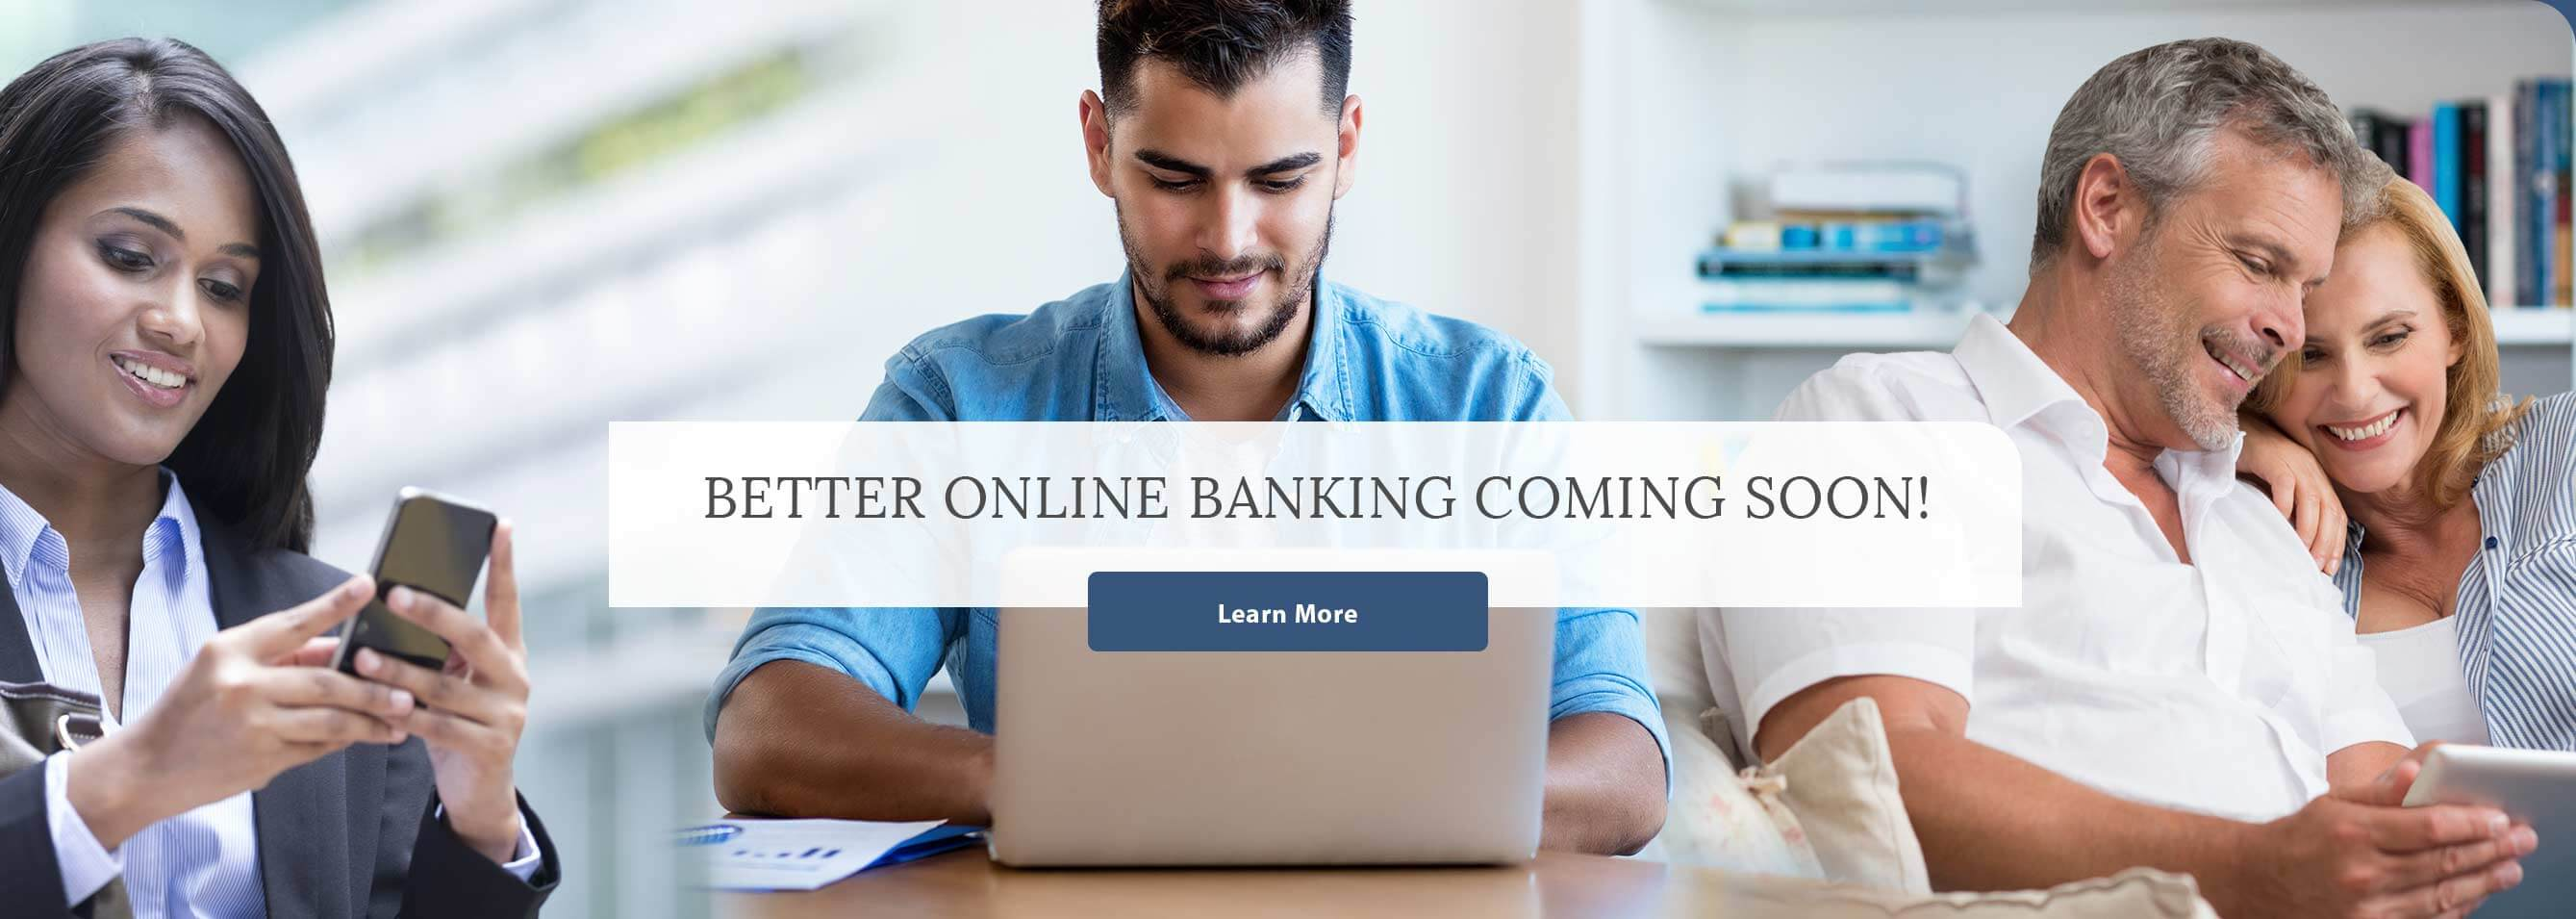 Better Online Banking Coming Soon! Learn More